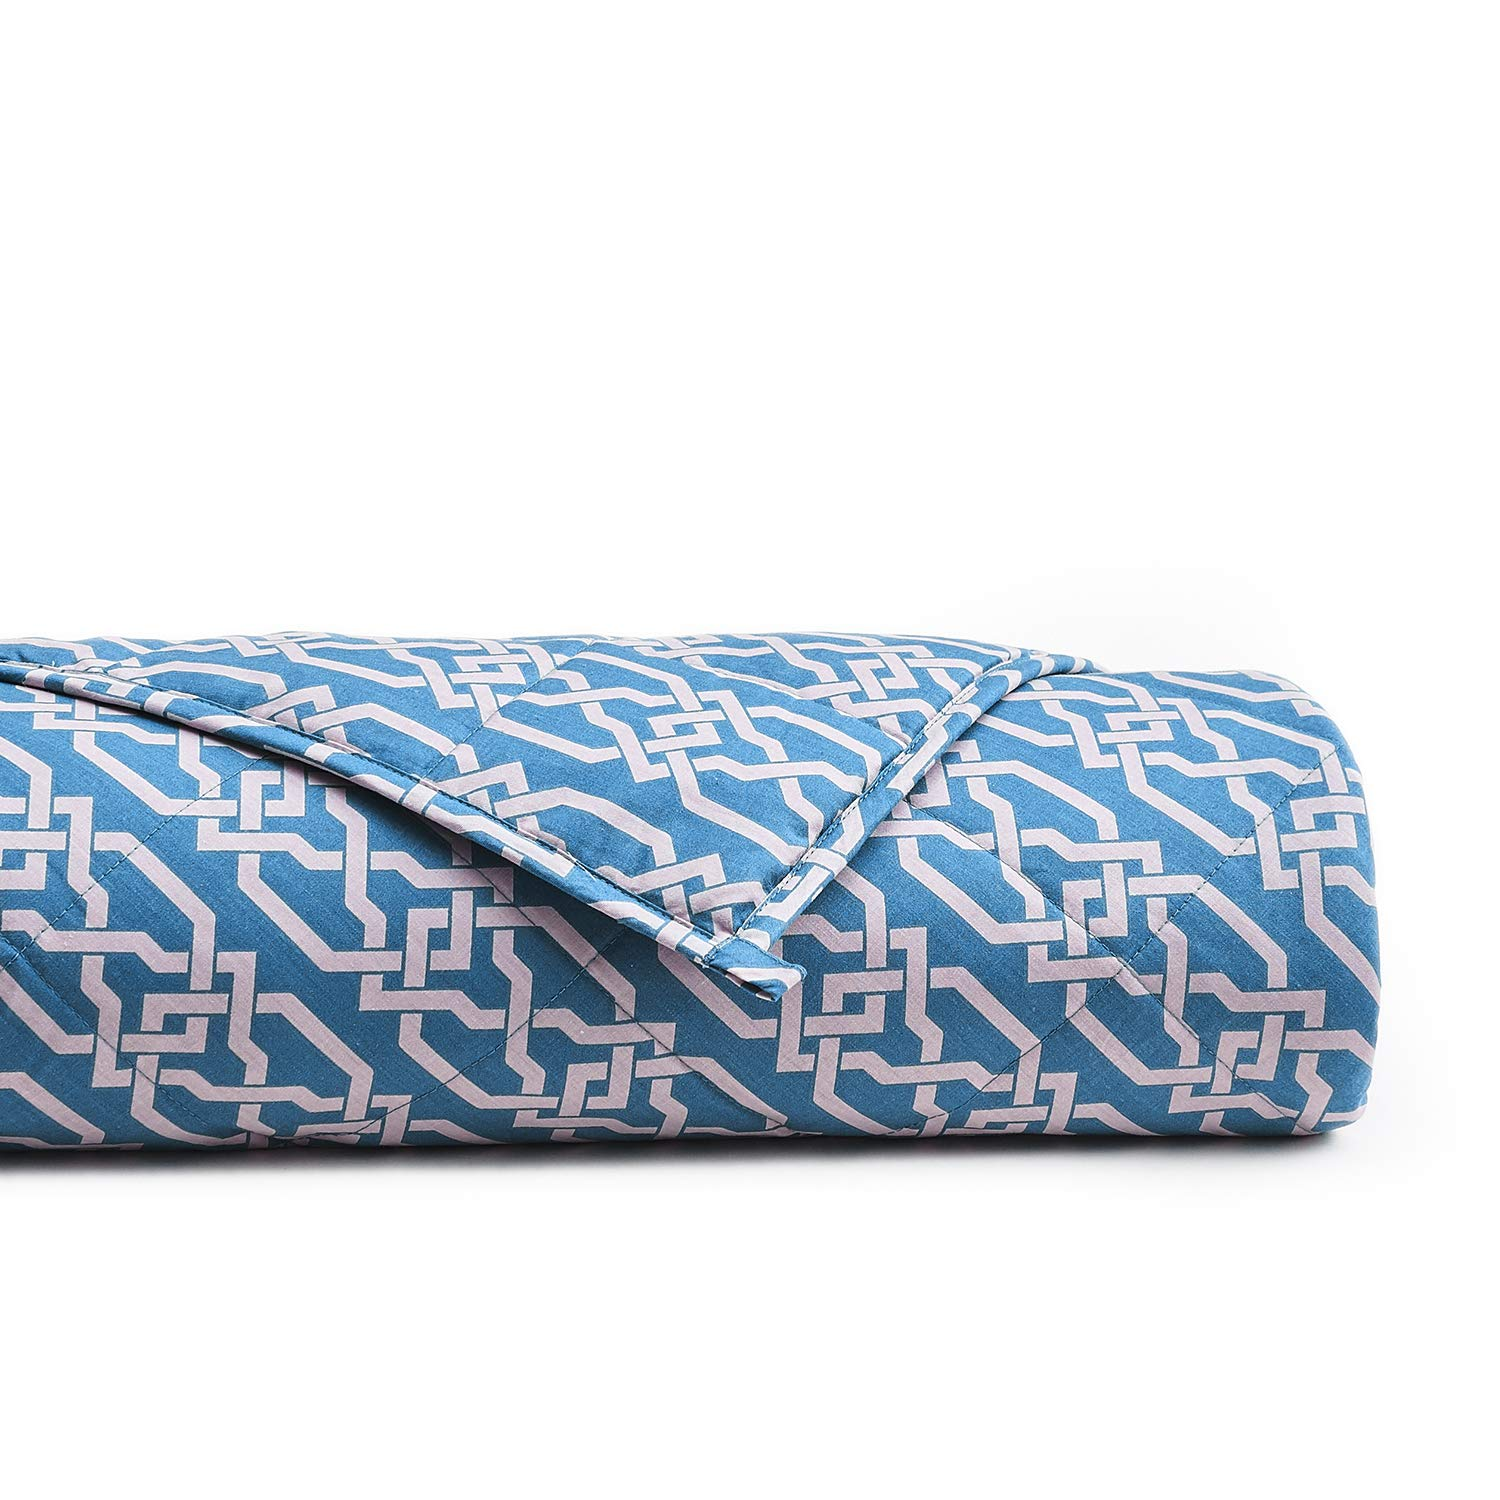 YnM Weighted Blanket (15 lbs, 48''x72'', Queen Size) | 3.0 Heavy Blanket | 100% Cotton Material with Glass Beads